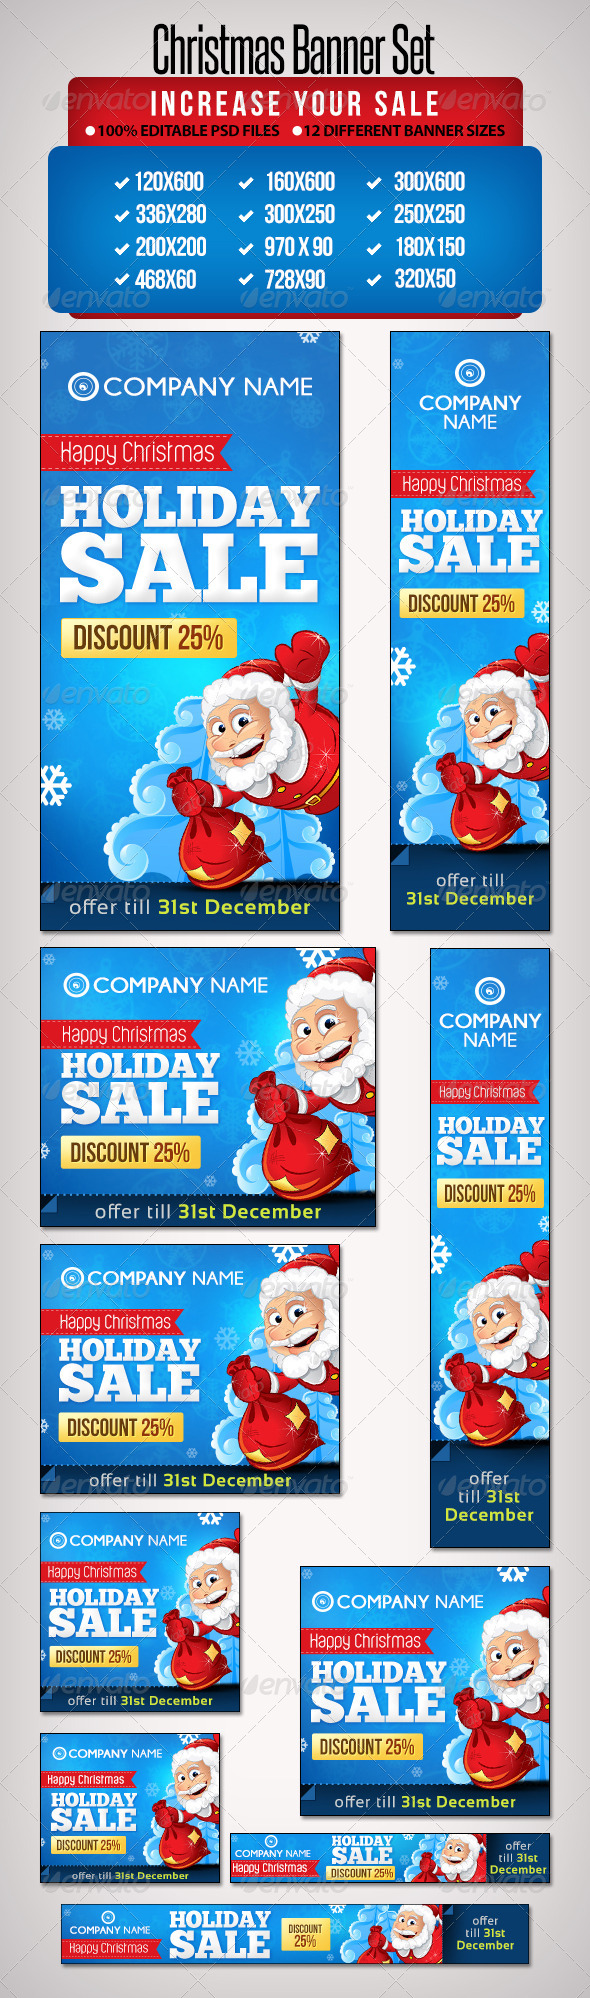 GraphicRiver Christmas Banner Set 5 12 Sizes 6332452